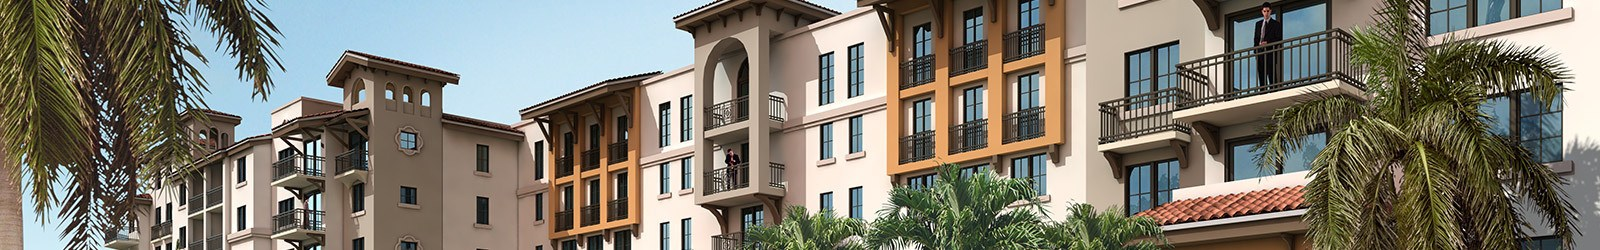 Apply now for 500 OCEAN Apartments living in Boynton Beach, FL